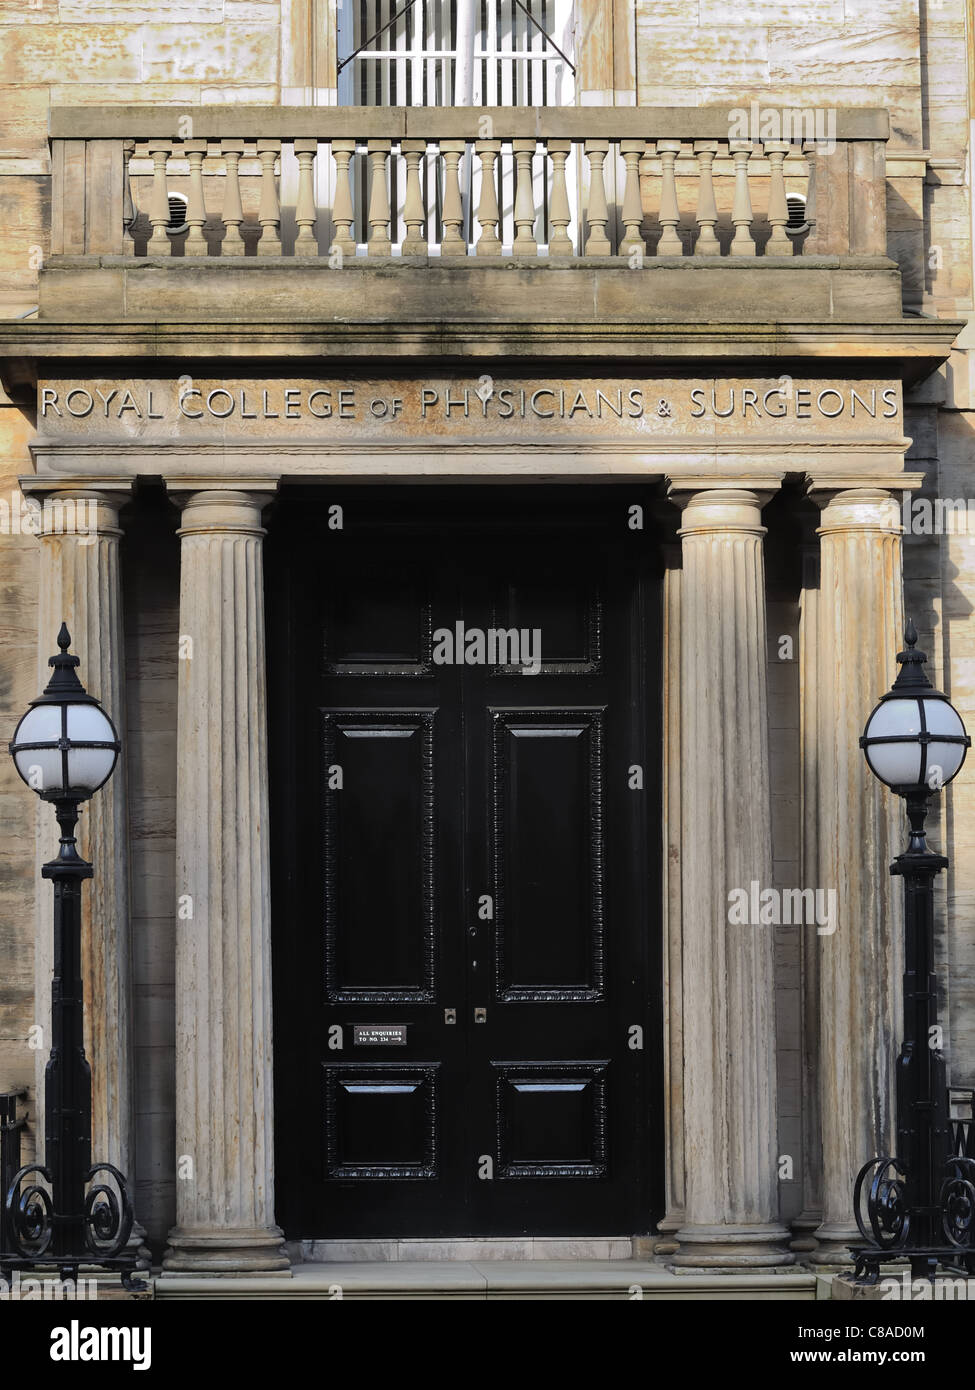 Entrance to the Royal college of physicians and surgeons, Scotland - Stock Image